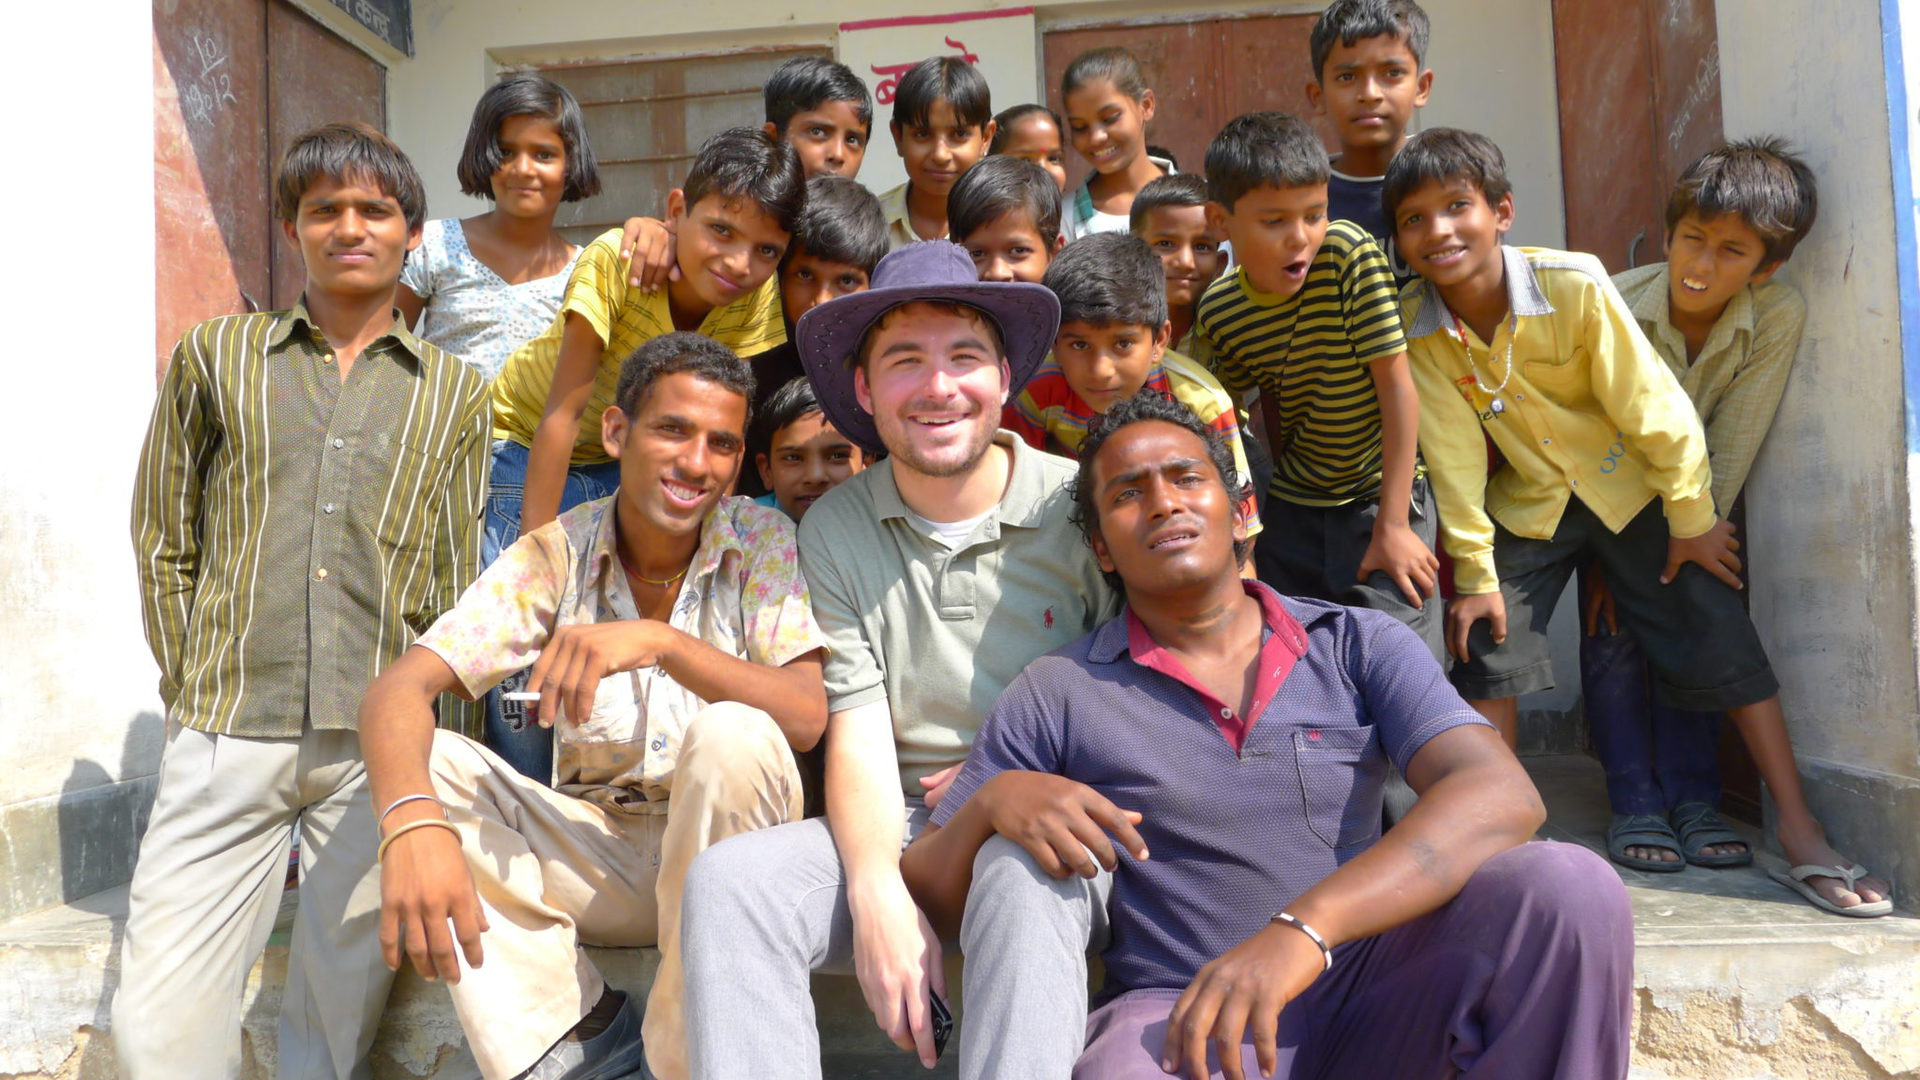 Director-James-Kicklighter-Desires-Of-The-Heart-India-On-Set-Extras